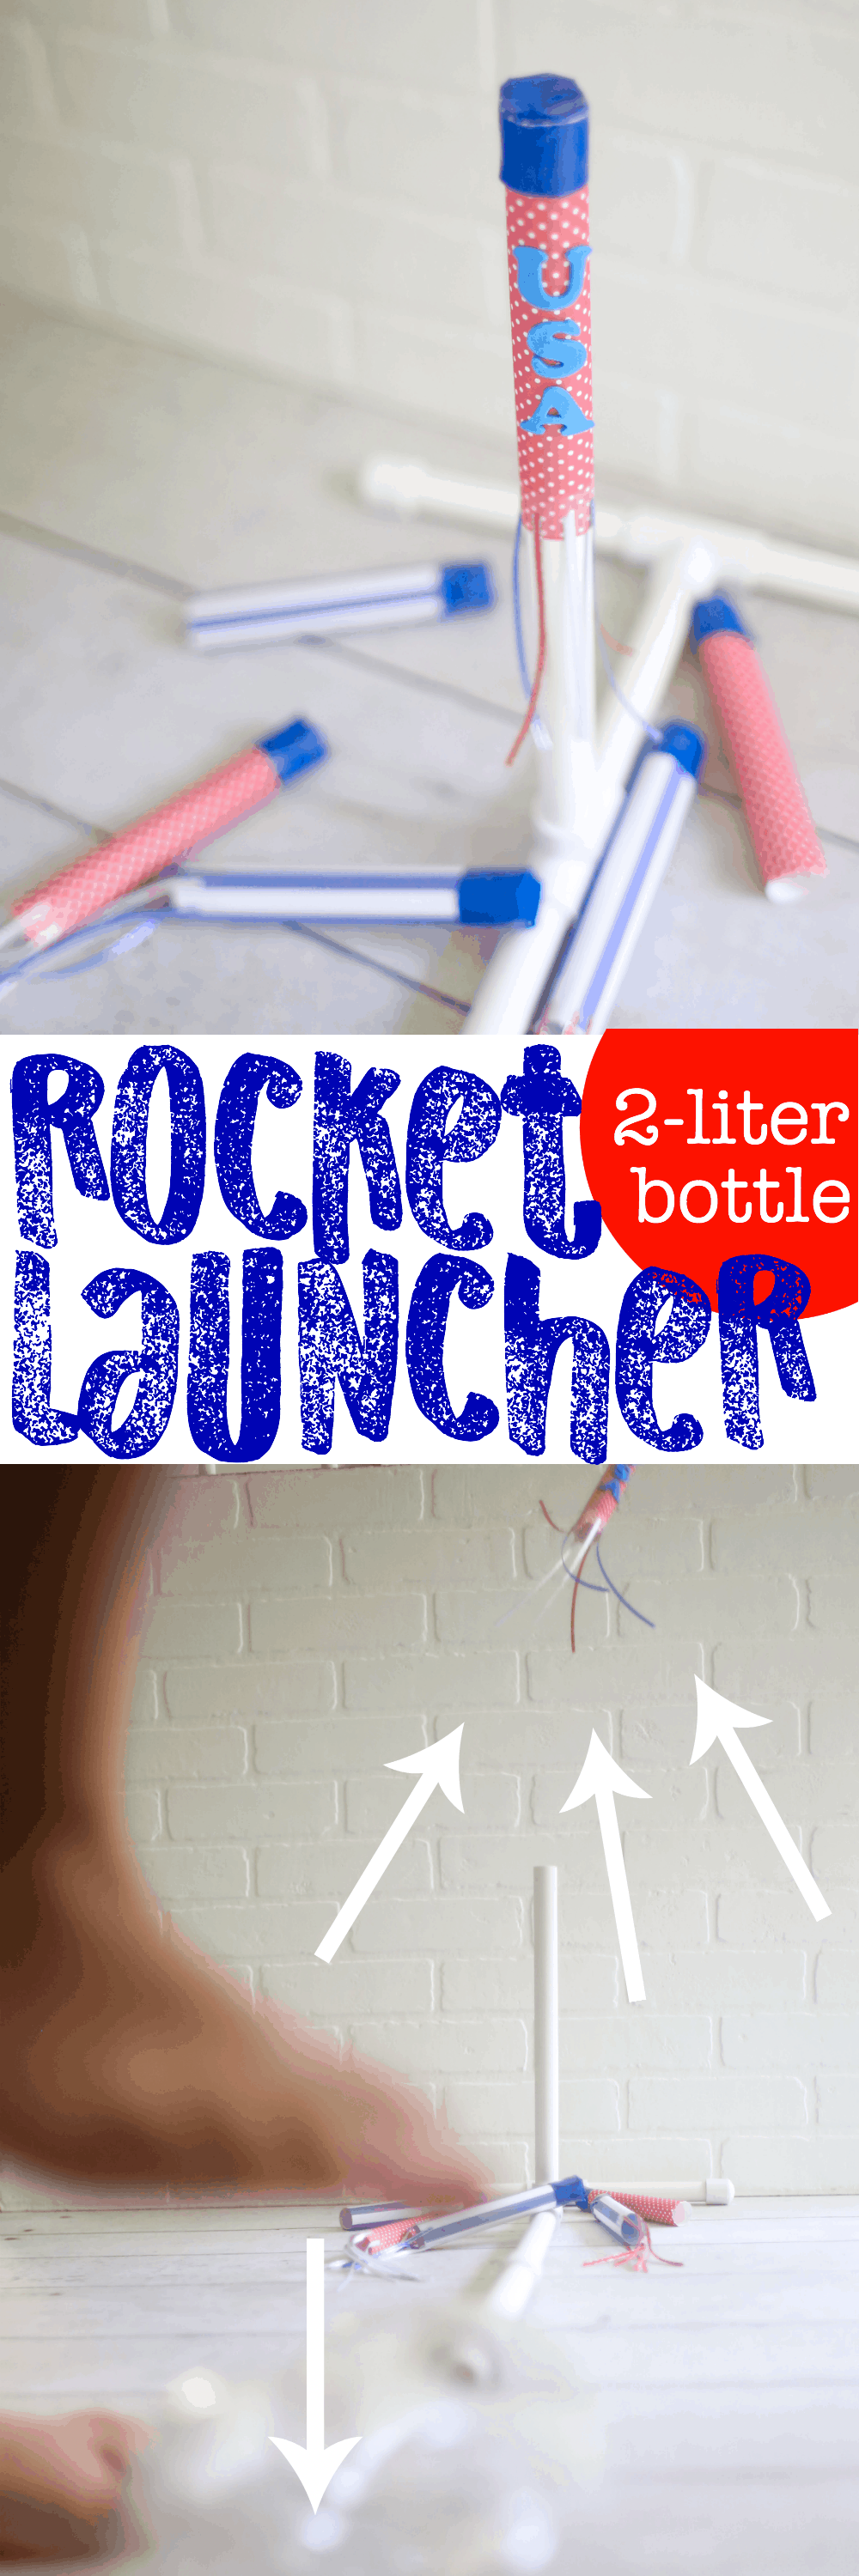 how to build a 2 liter bottle rocket launcher